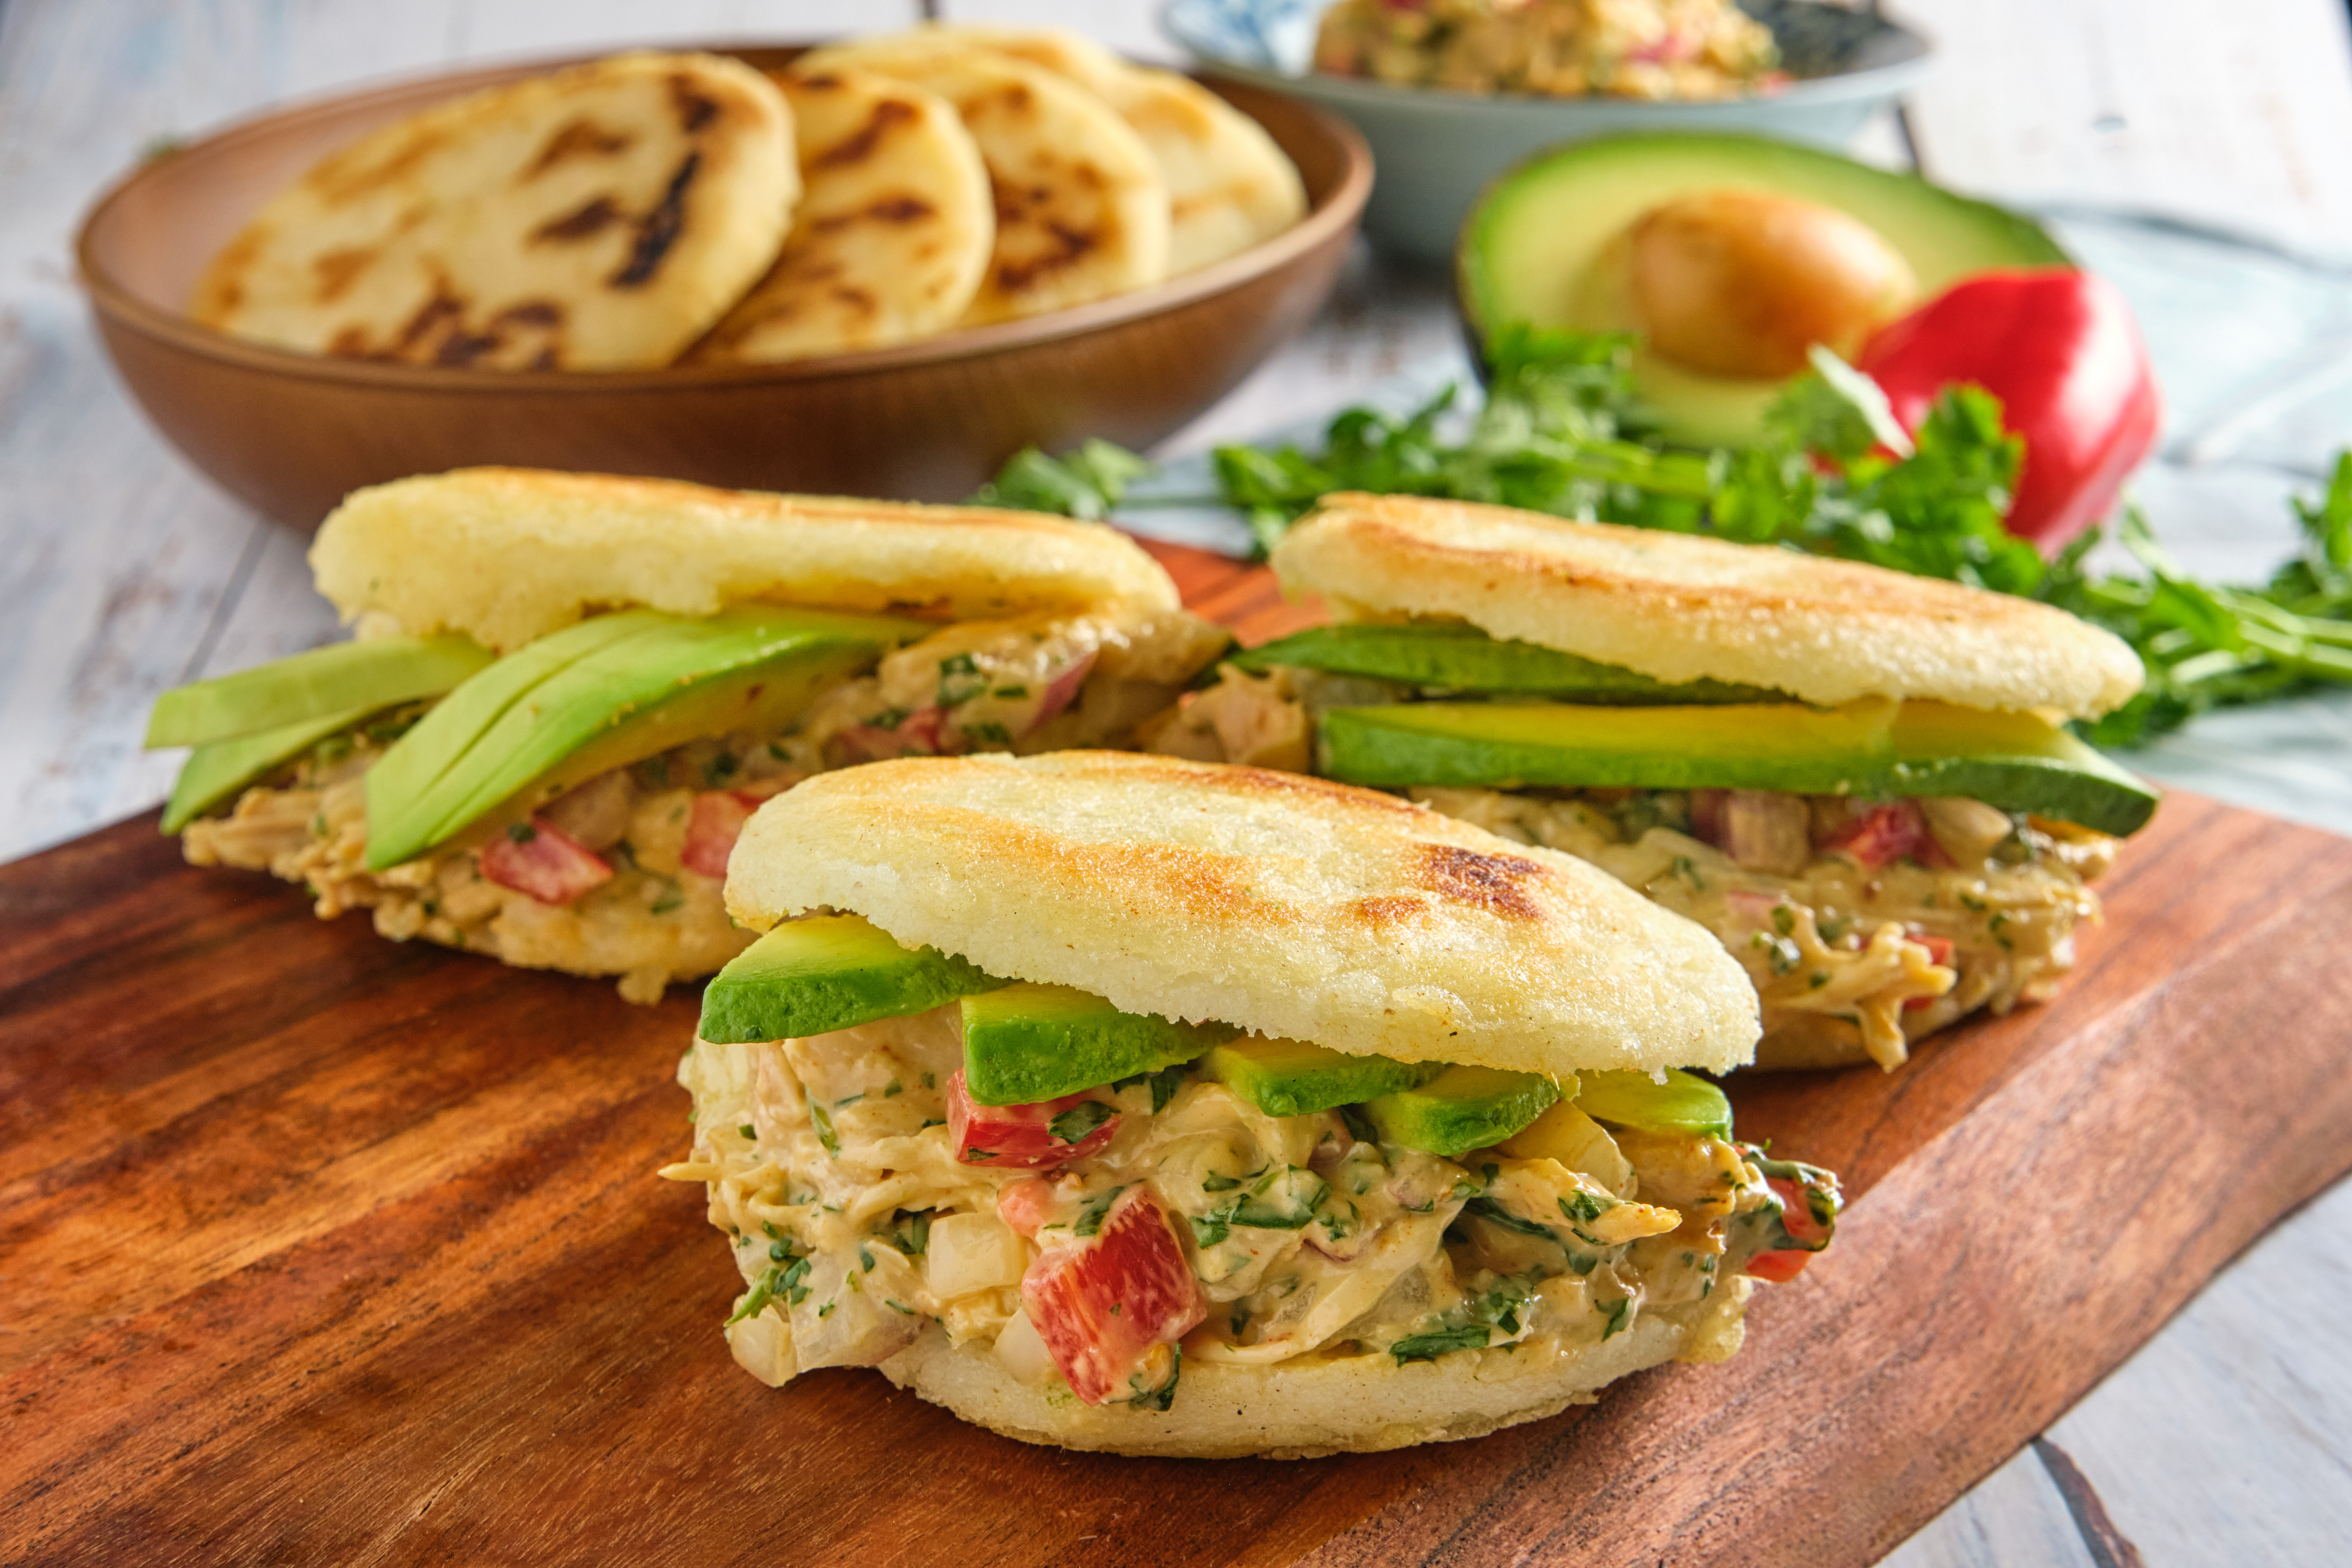 Three arepas sit on a wooden cutting board with a bowl of unstuffed arepas in the background.